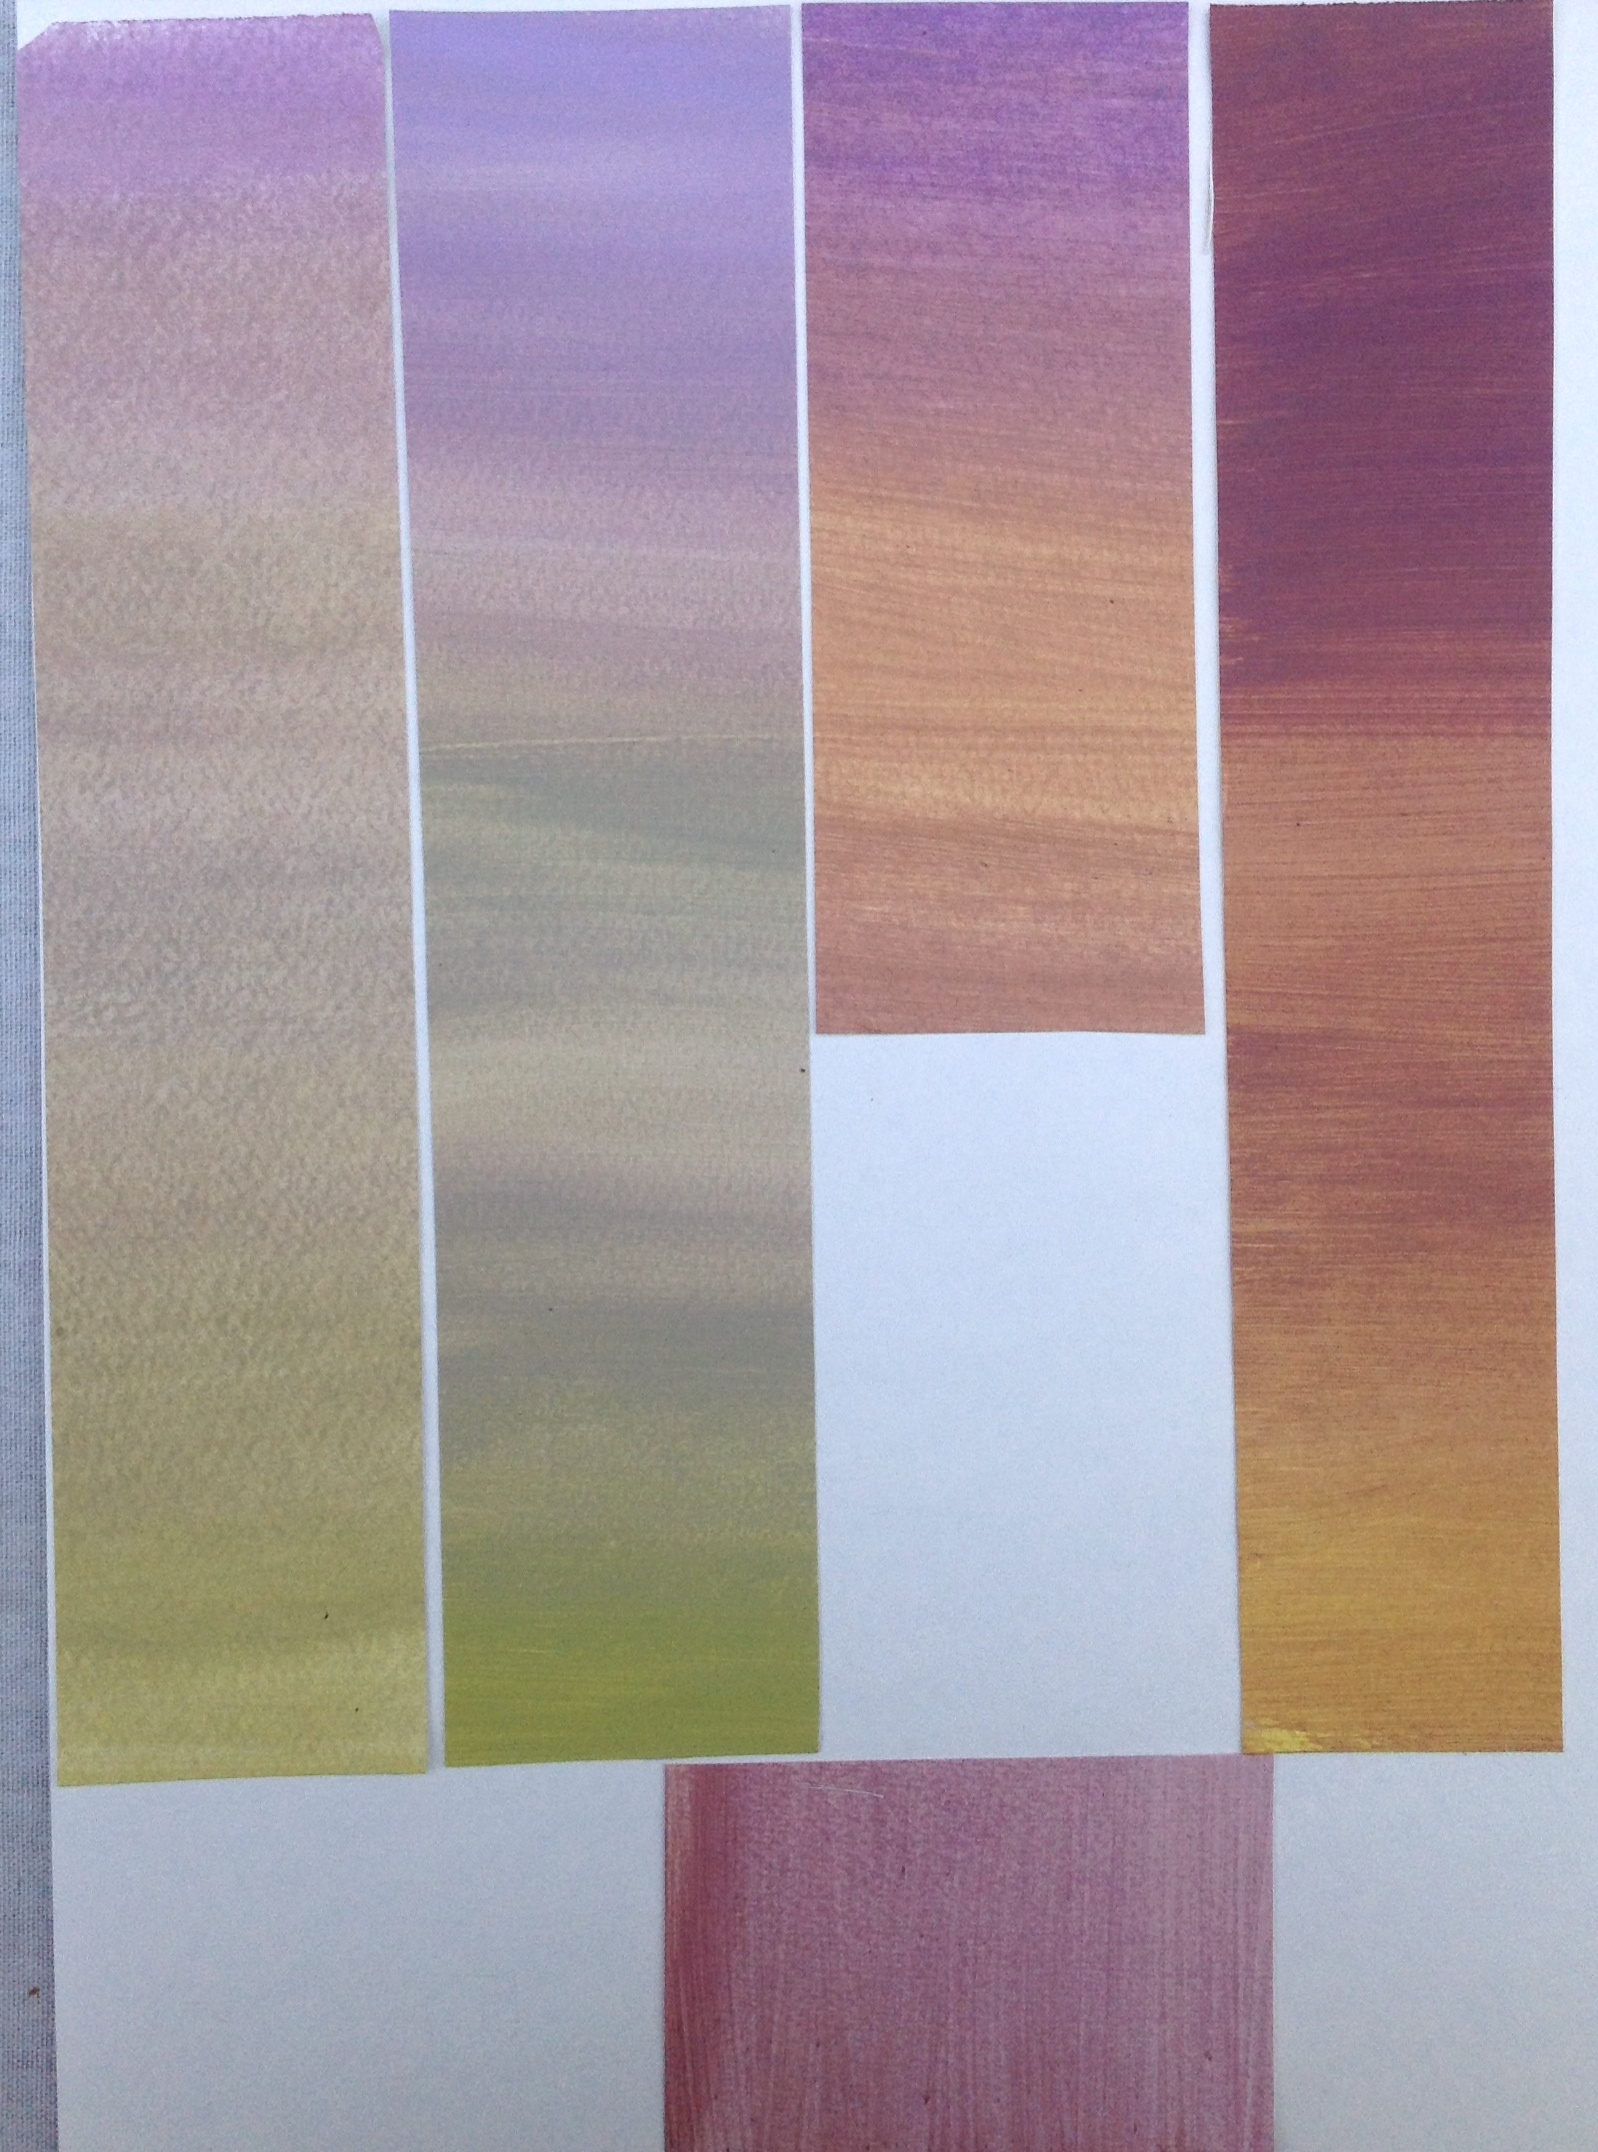 Strips from papers painted for exercise 4